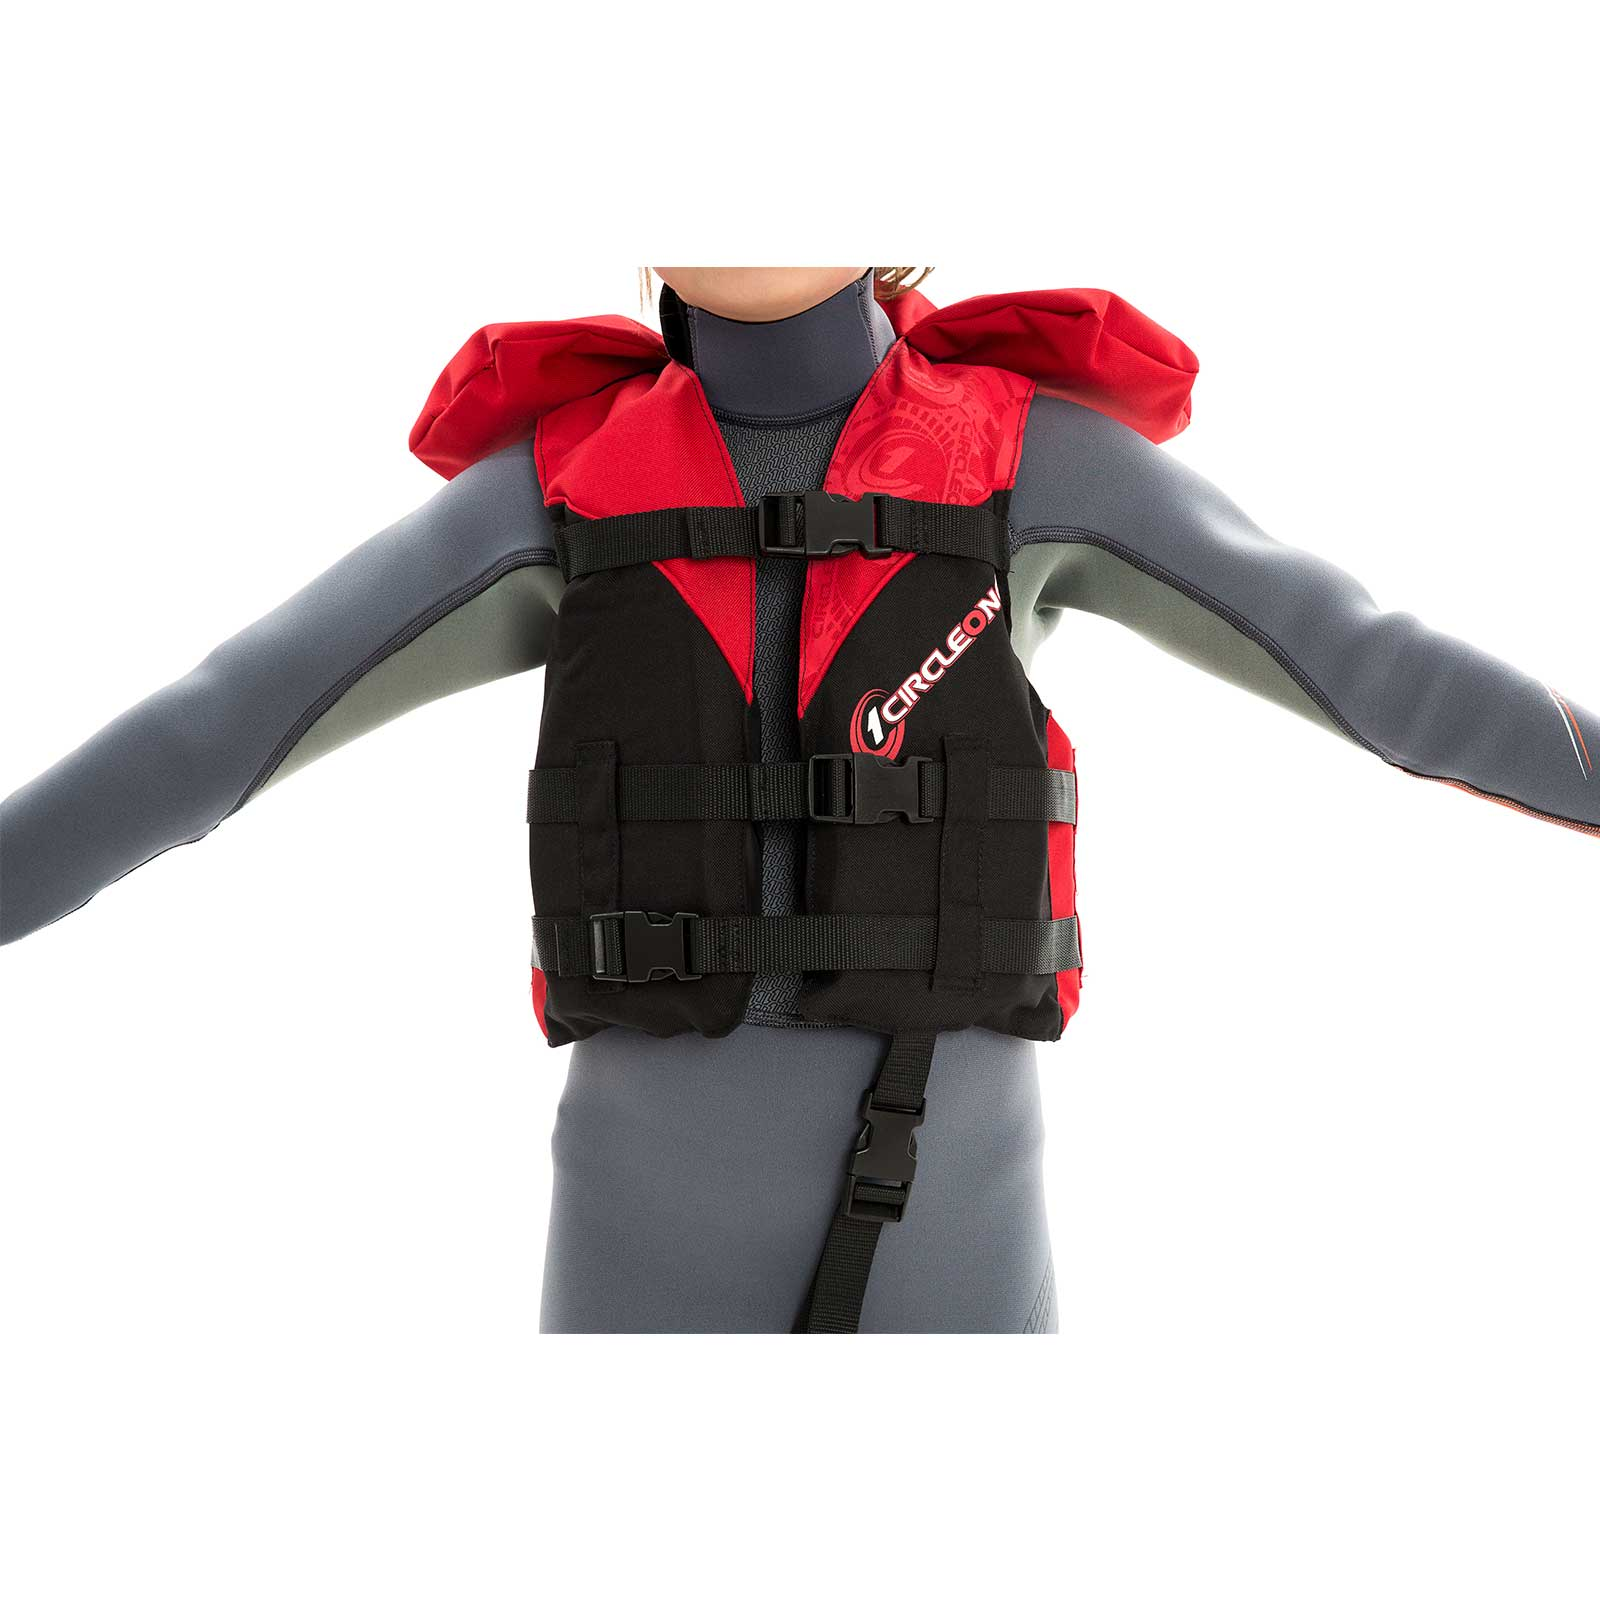 40N Child Buoyancy Aid PFD with 3 Straps + Collar (one size)